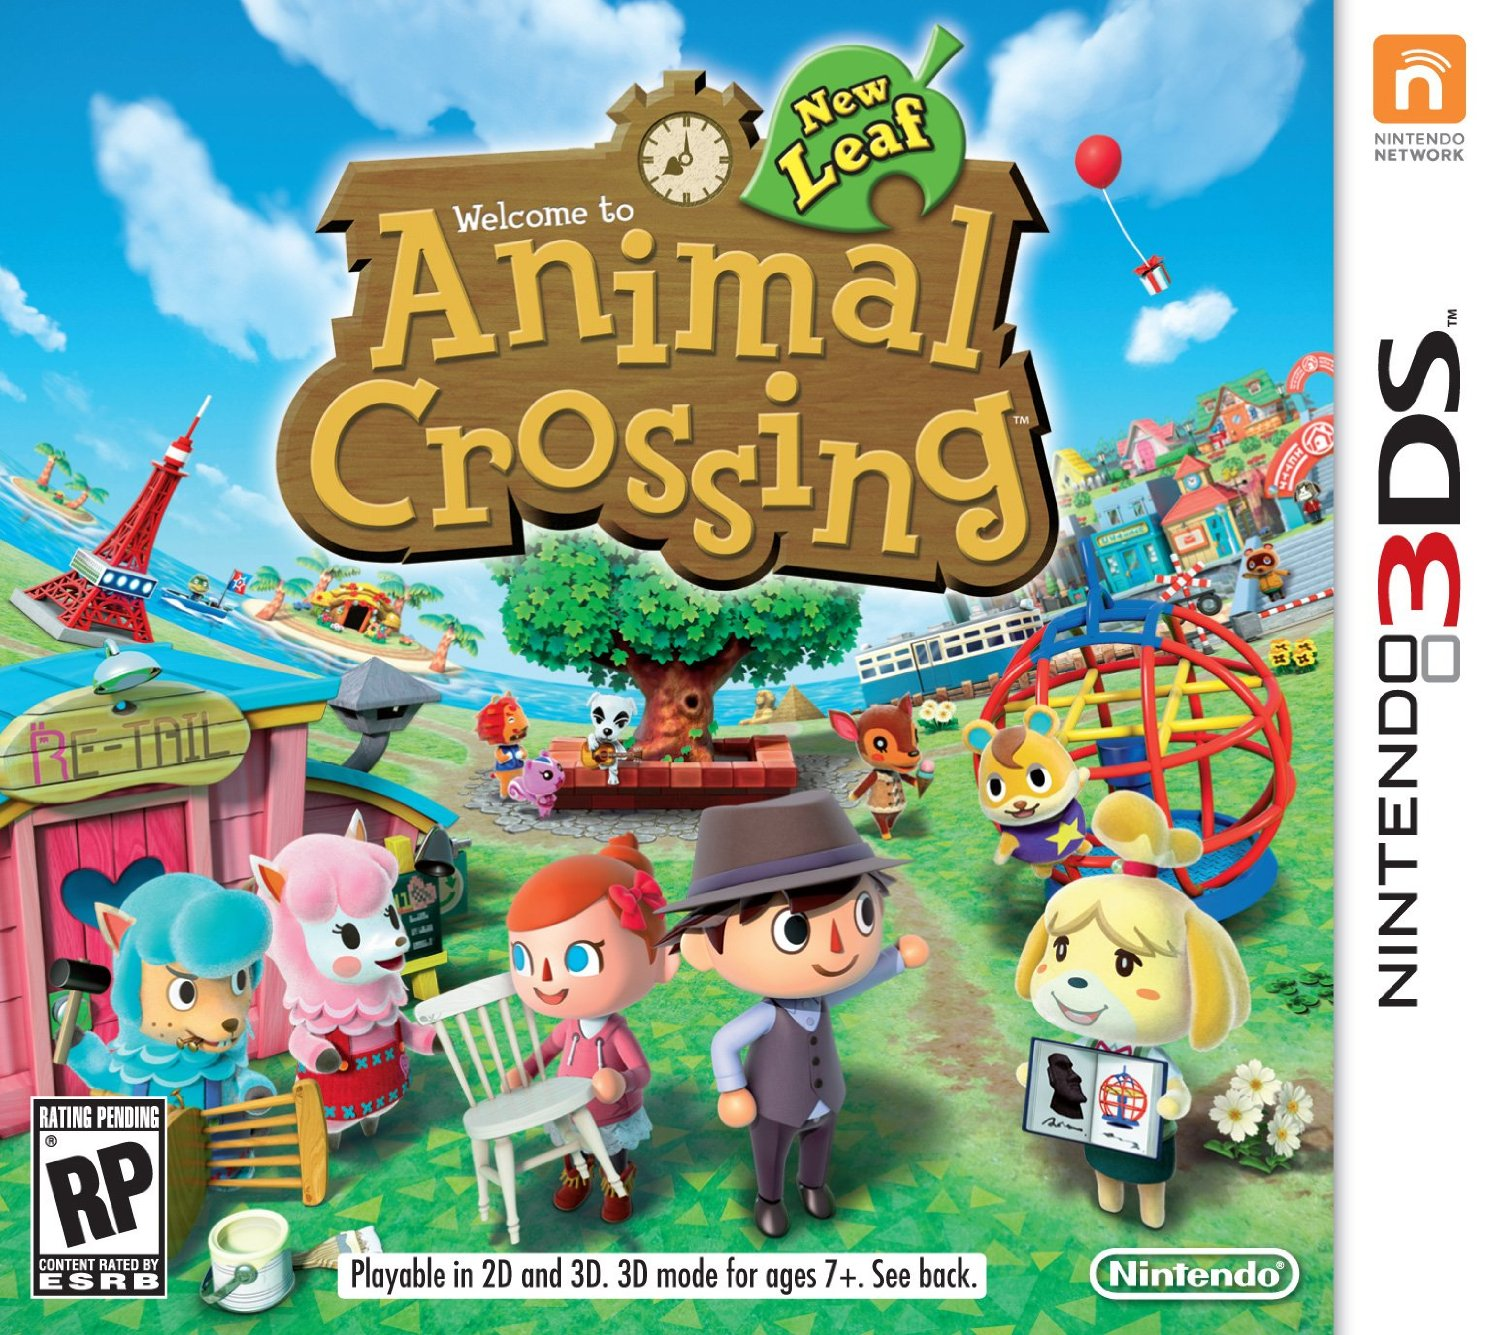 Acnl Exterior Home - animal_crossing_new_leaf_box_art_north_america_Popular Acnl Exterior Home - animal_crossing_new_leaf_box_art_north_america  2018_3810023.jpg